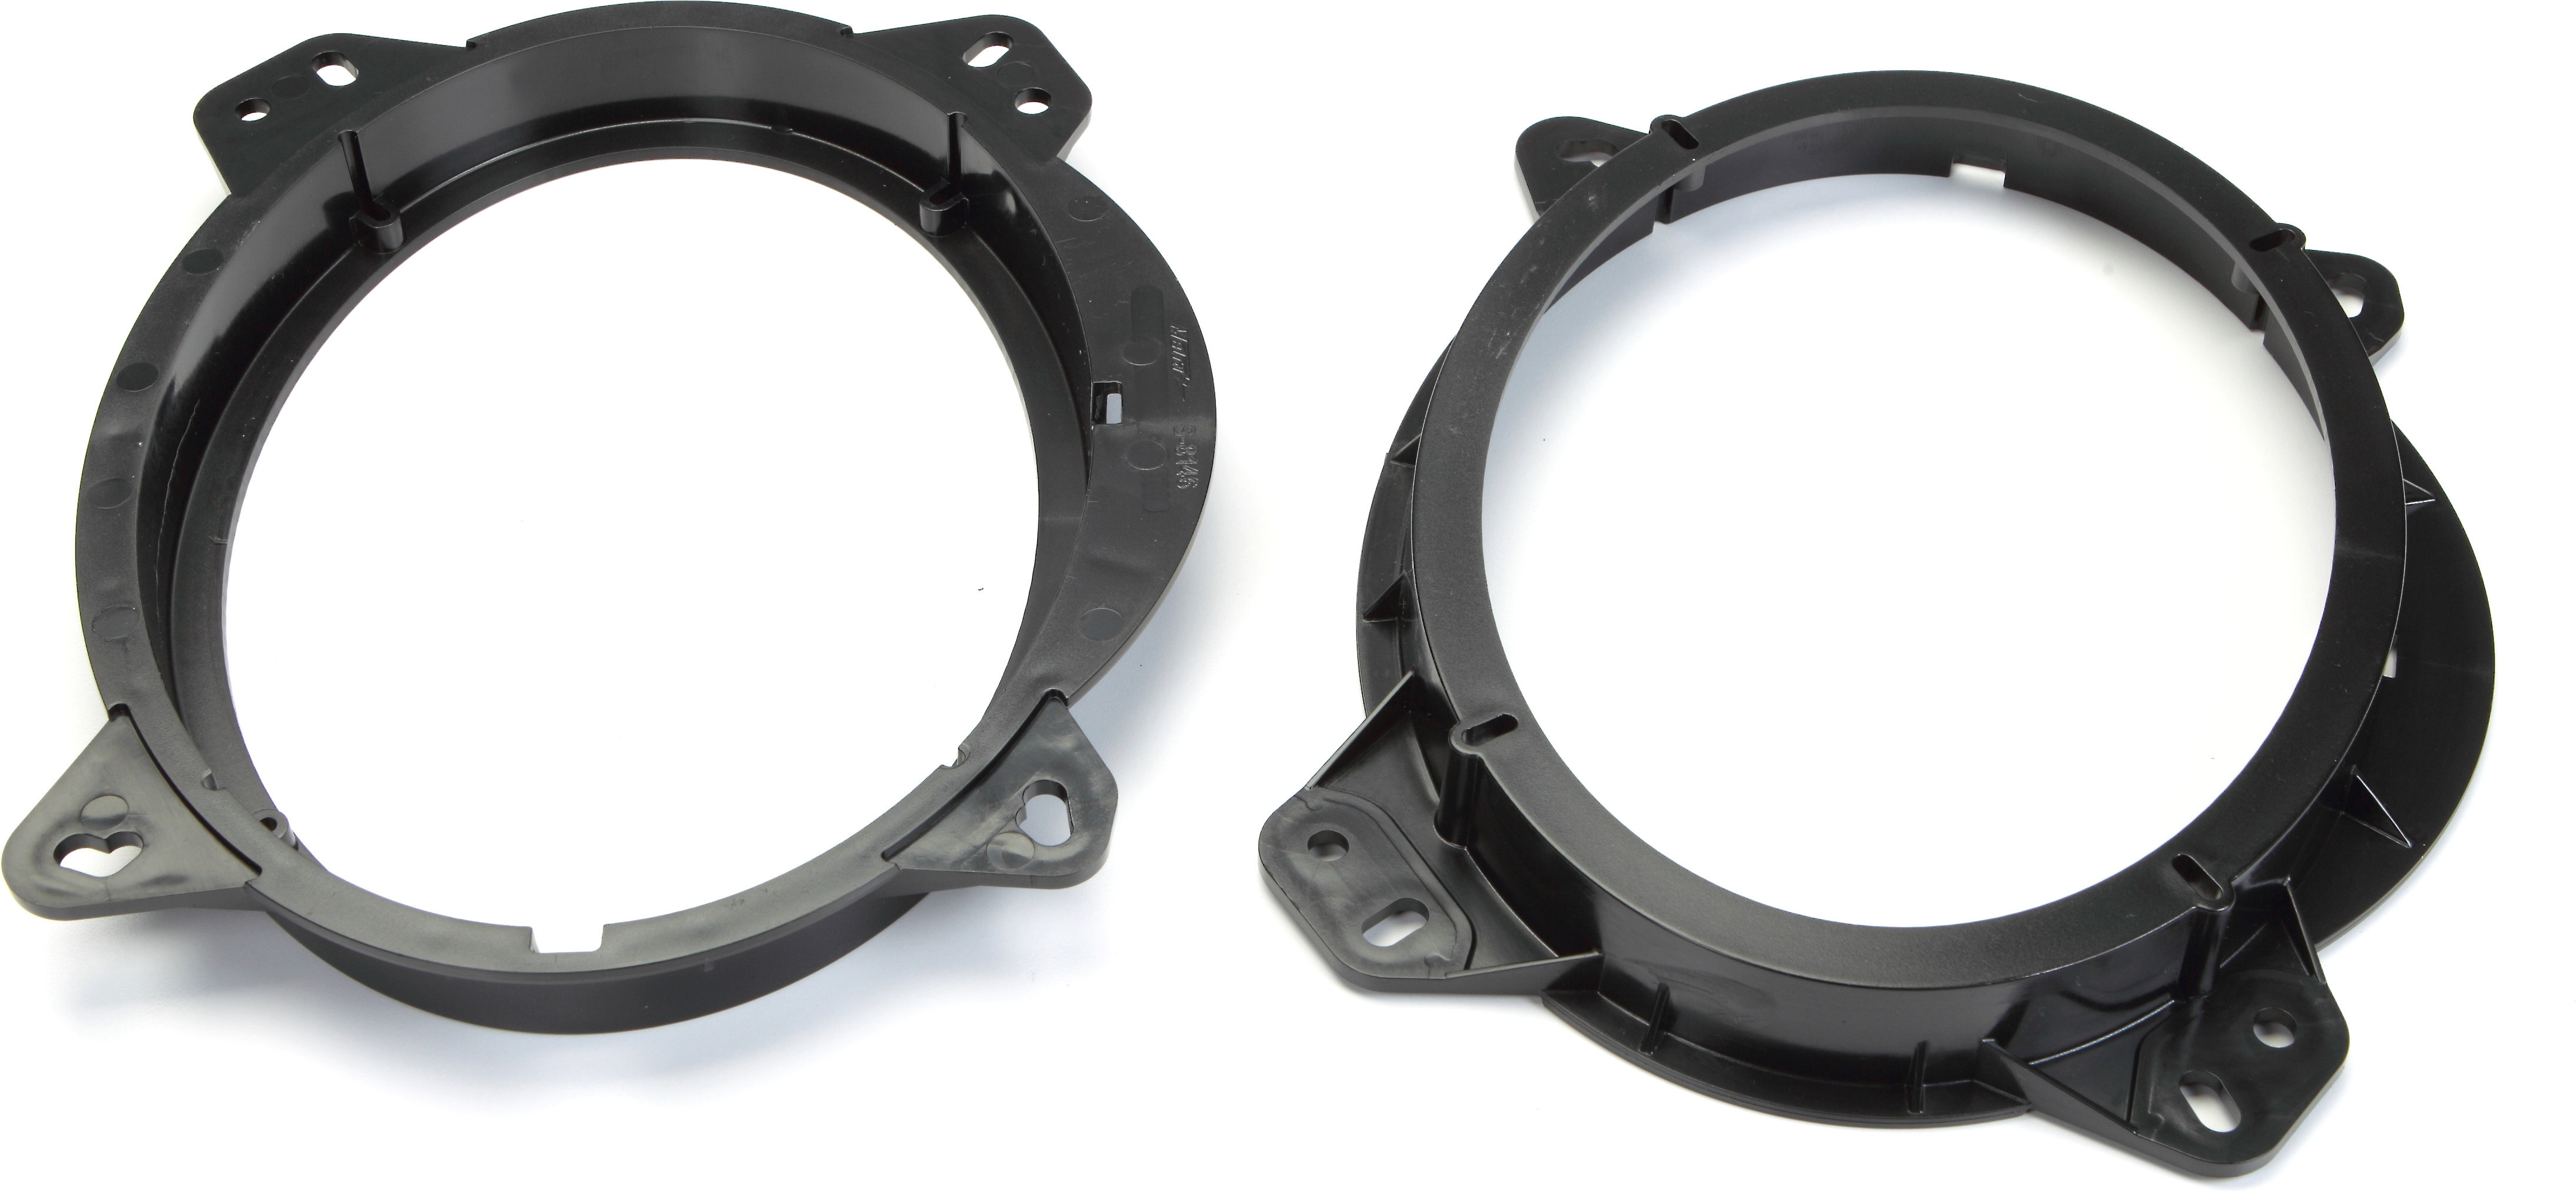 Metra 82-8147 6-6 3//4 Speaker Adapter for Select Toyota and Lexus Vehicles